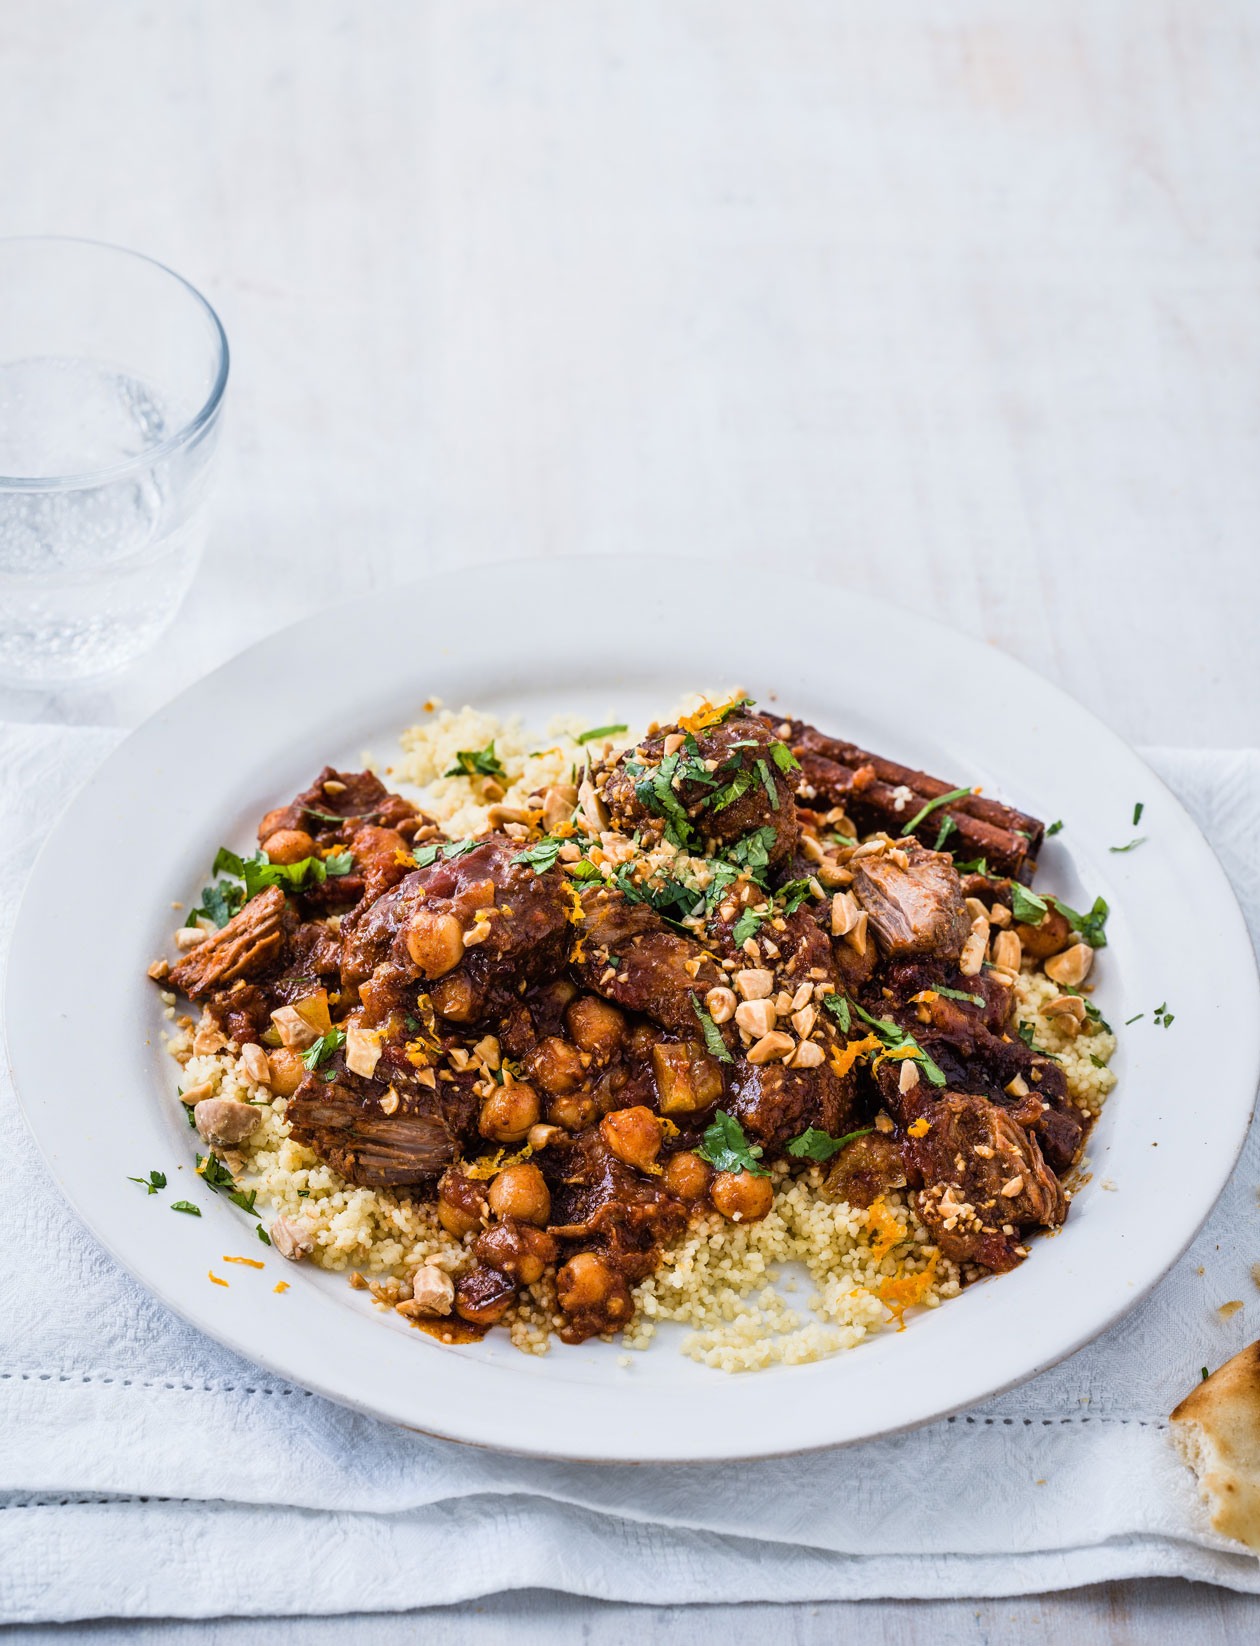 Lamb, Apricot & Chickpea Tagine Recipe